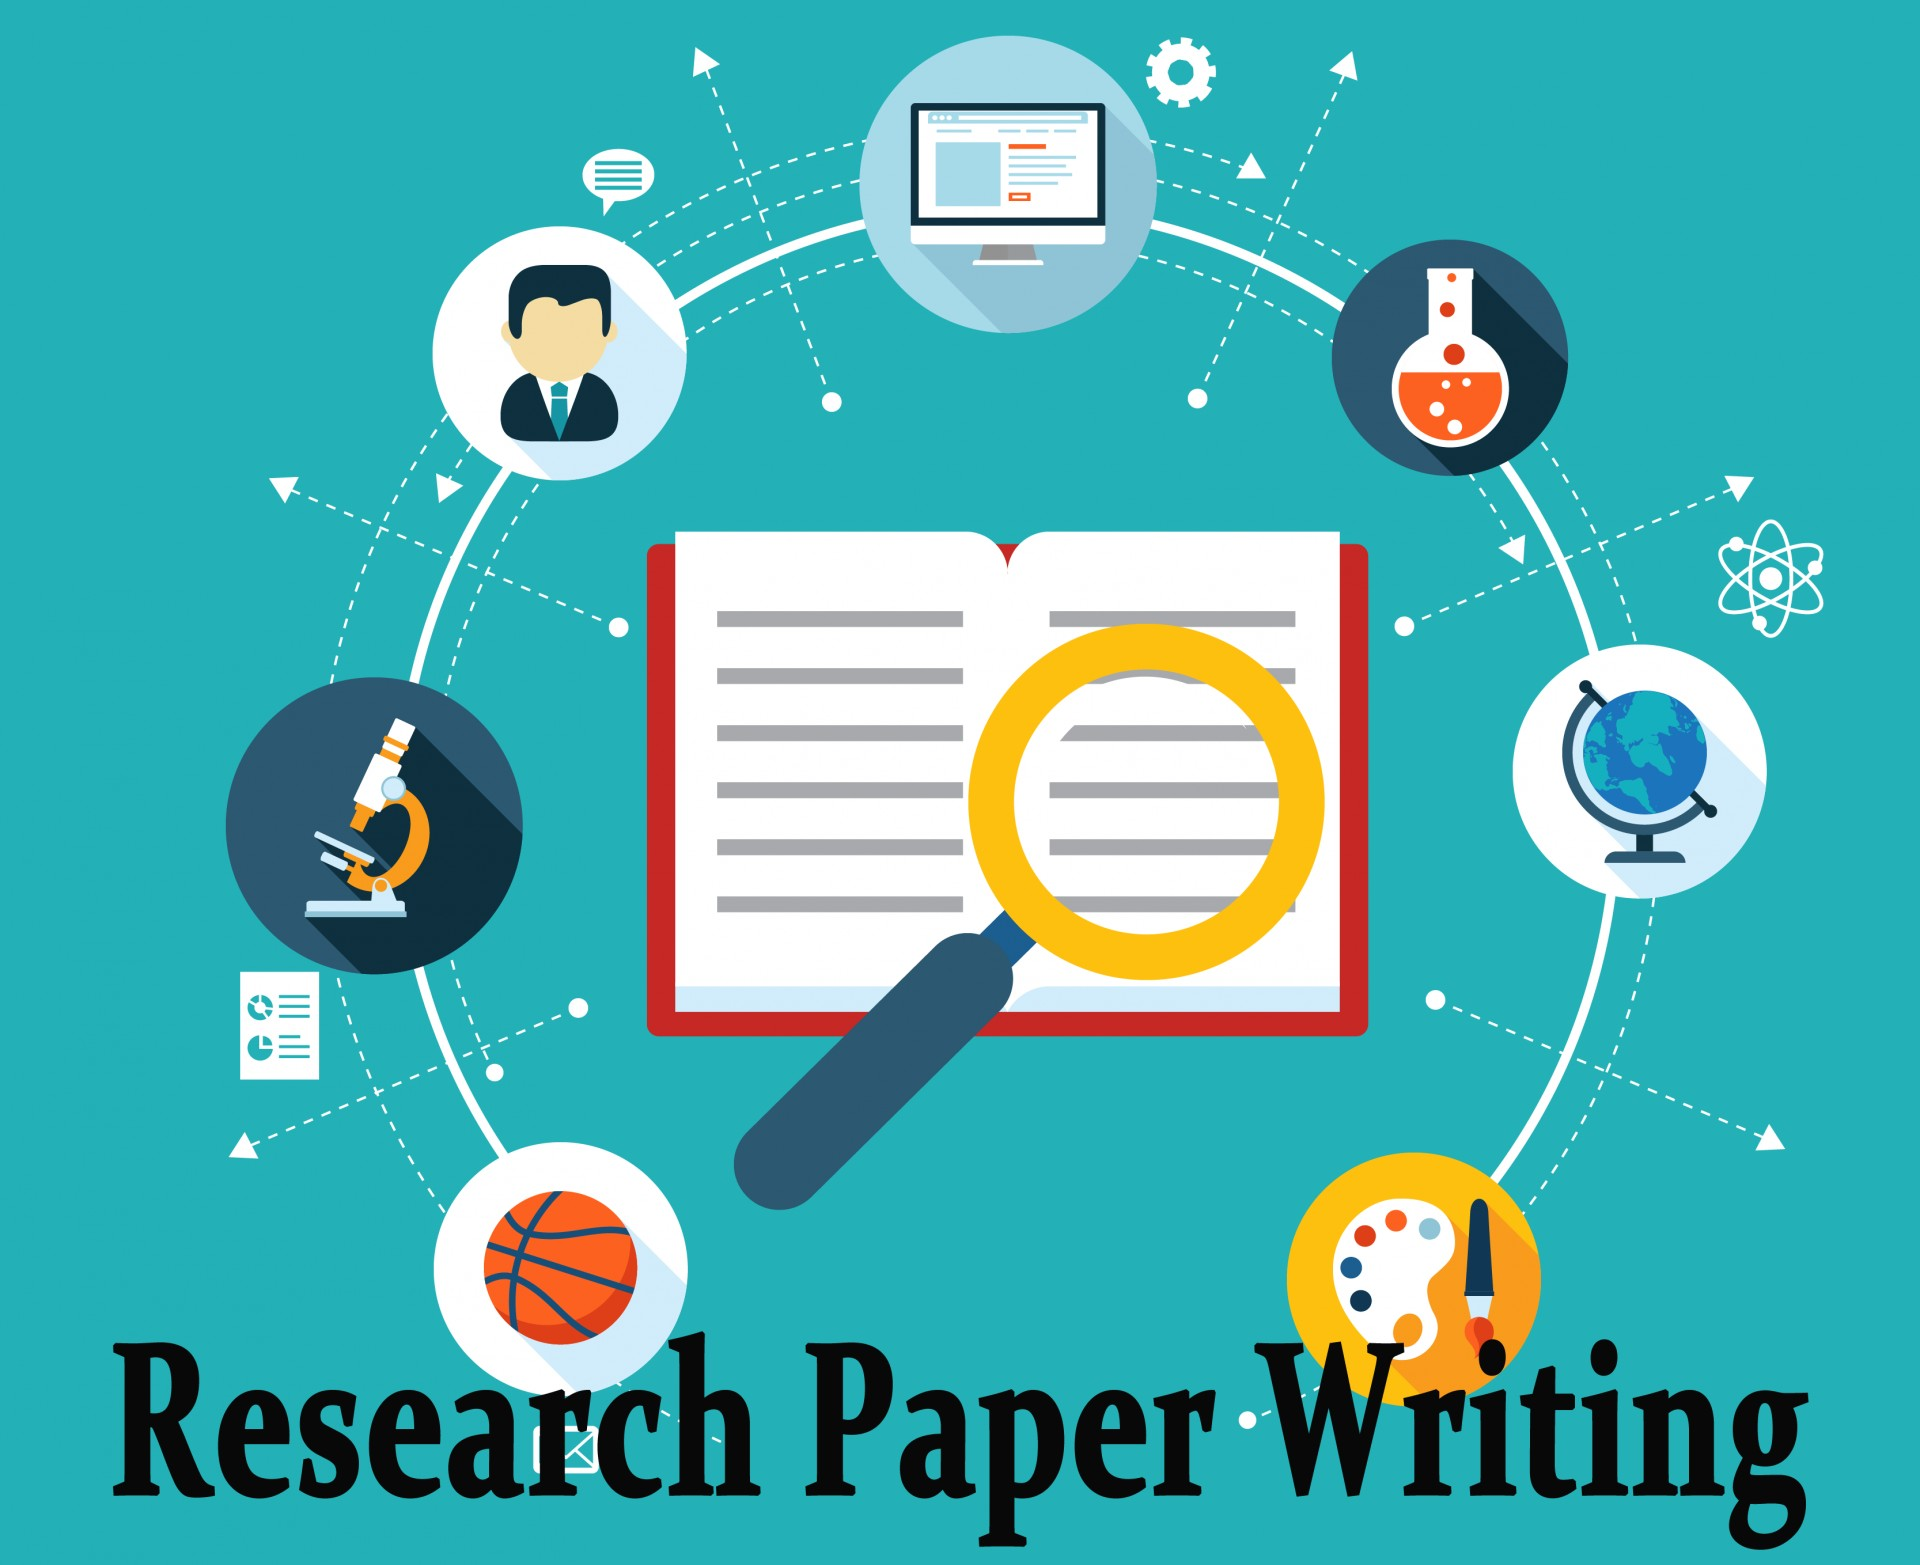 001 503 Effective Research Paper Writing Help With Fantastic Papers Assistance A 1920